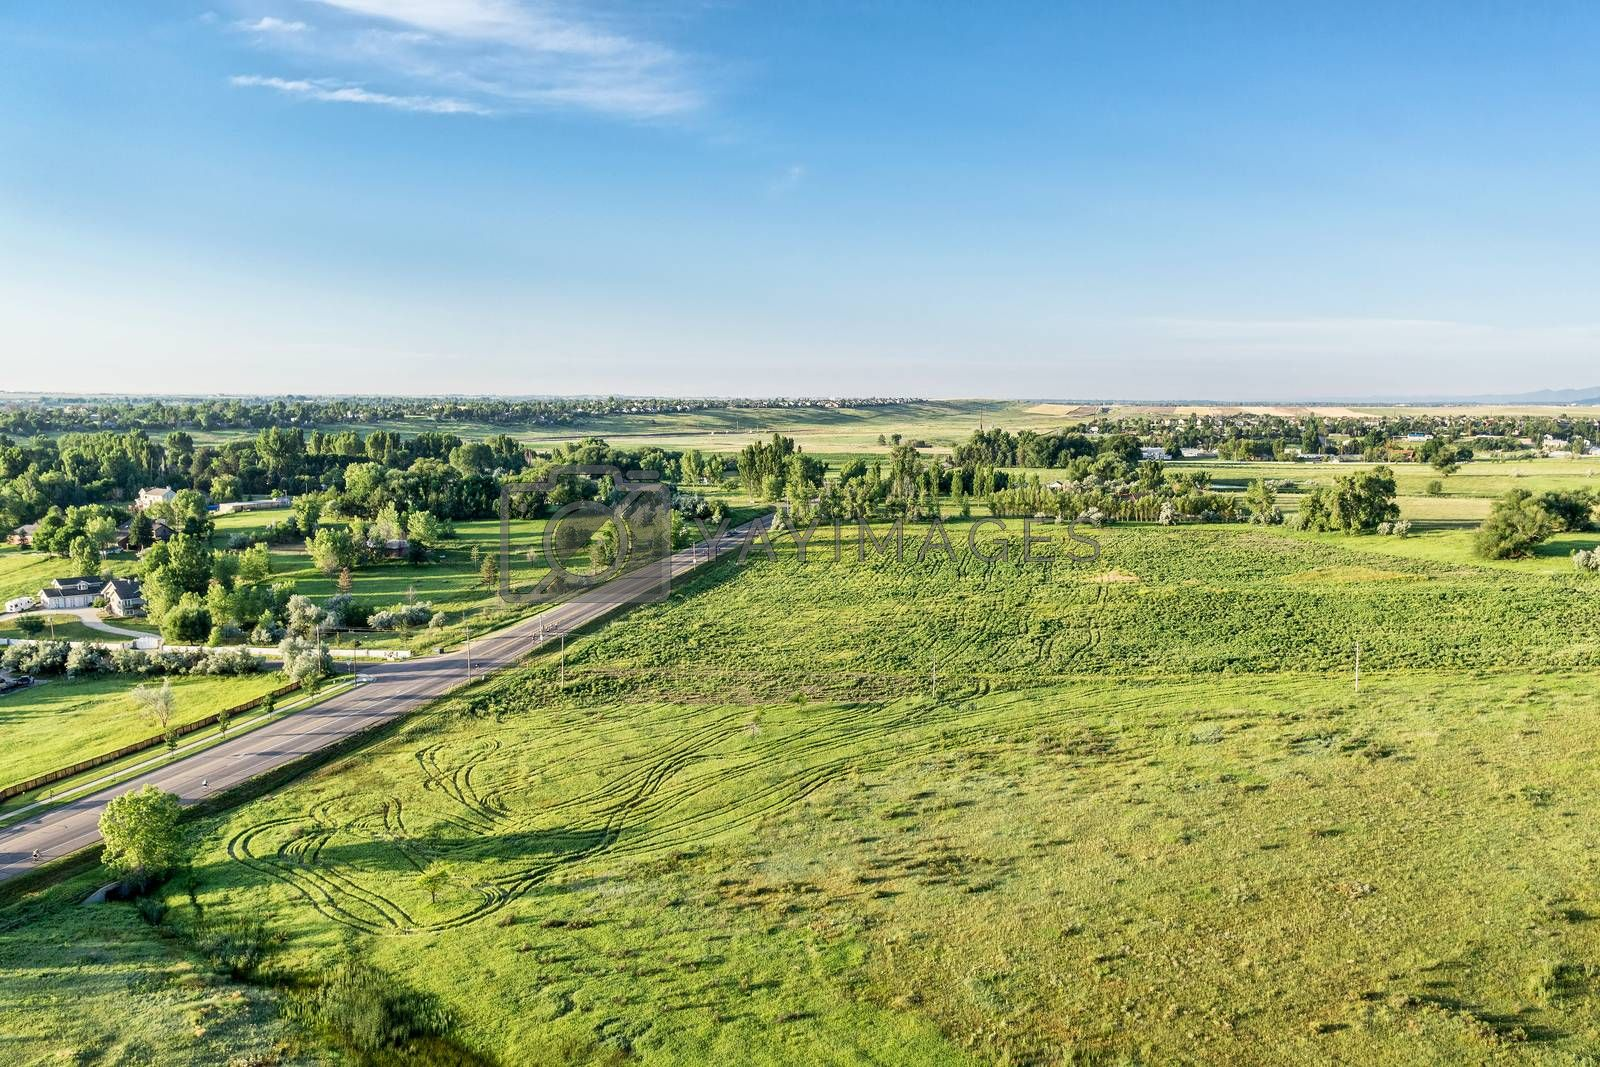 Aerial view of Rocky Mountains foothills near Fort Collins, Colorado with a green prairie, residential area and cyclist on a road